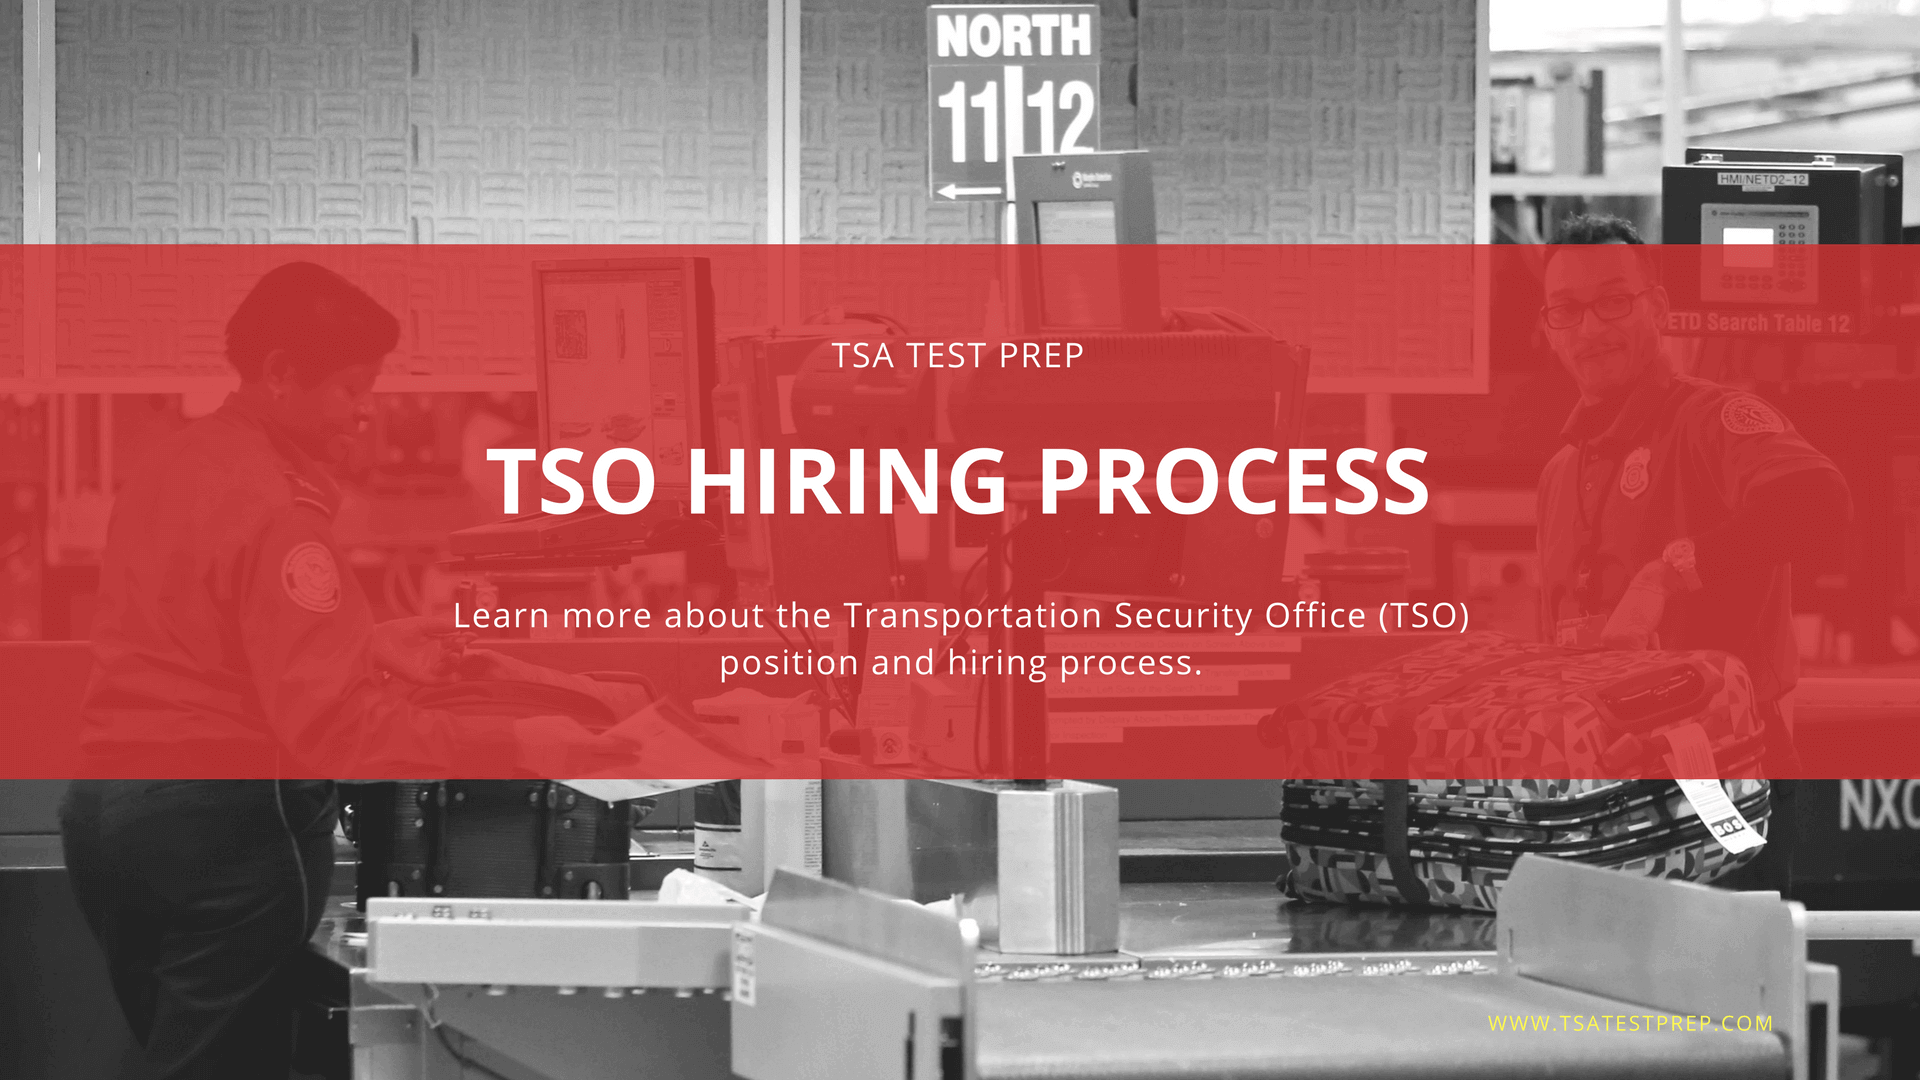 Transportation Security Officer (TSO) Hiring Process & Study Guide